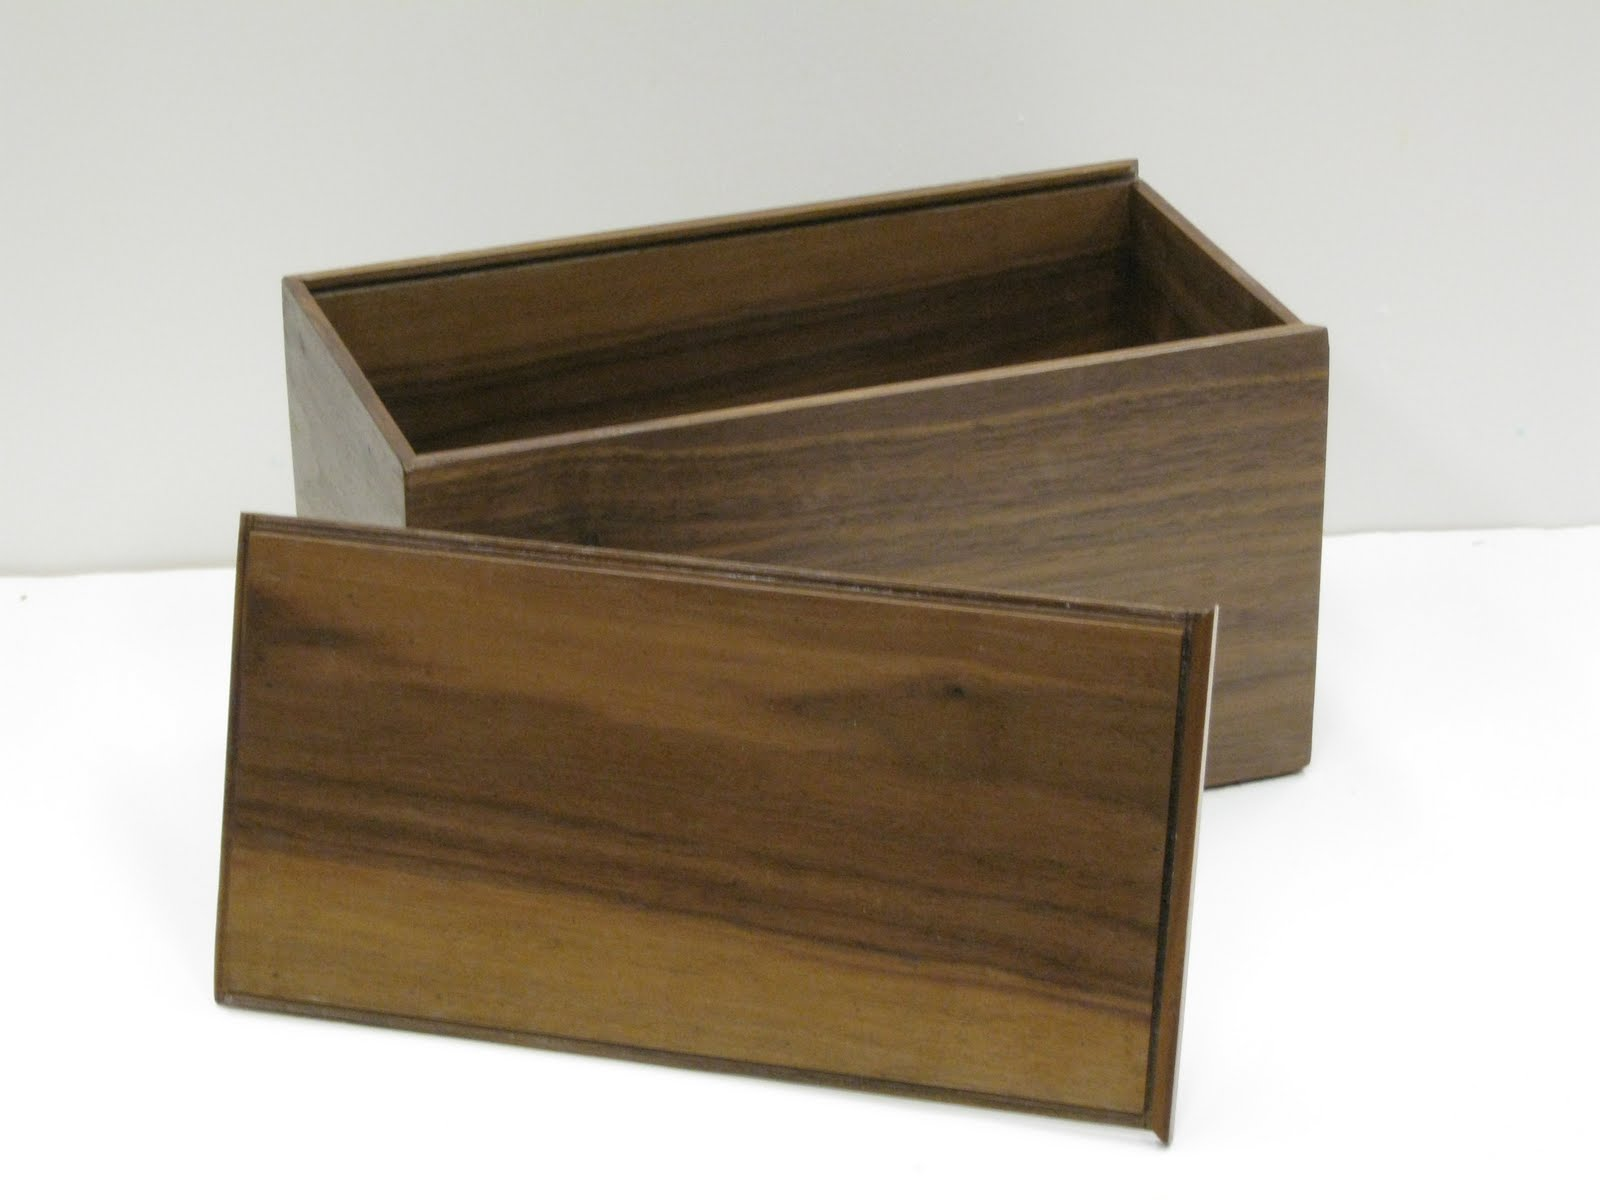 WP Wood Working: Wooden Boxes